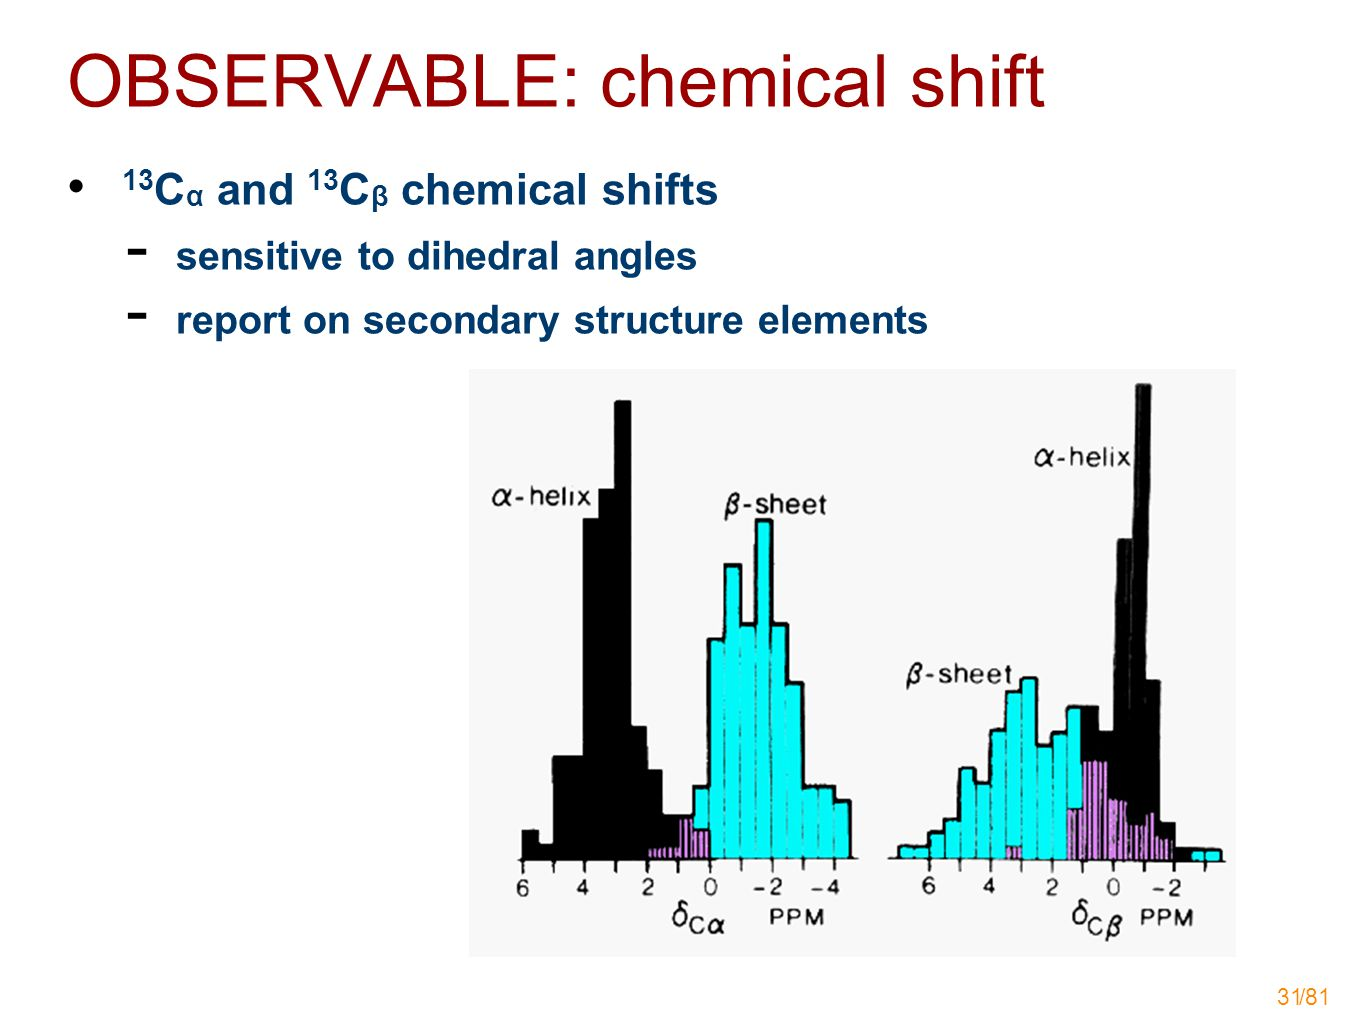 /81 31 13 C α and 13 C β chemical shifts  sensitive to dihedral angles  report on secondary structure elements OBSERVABLE: chemical shift